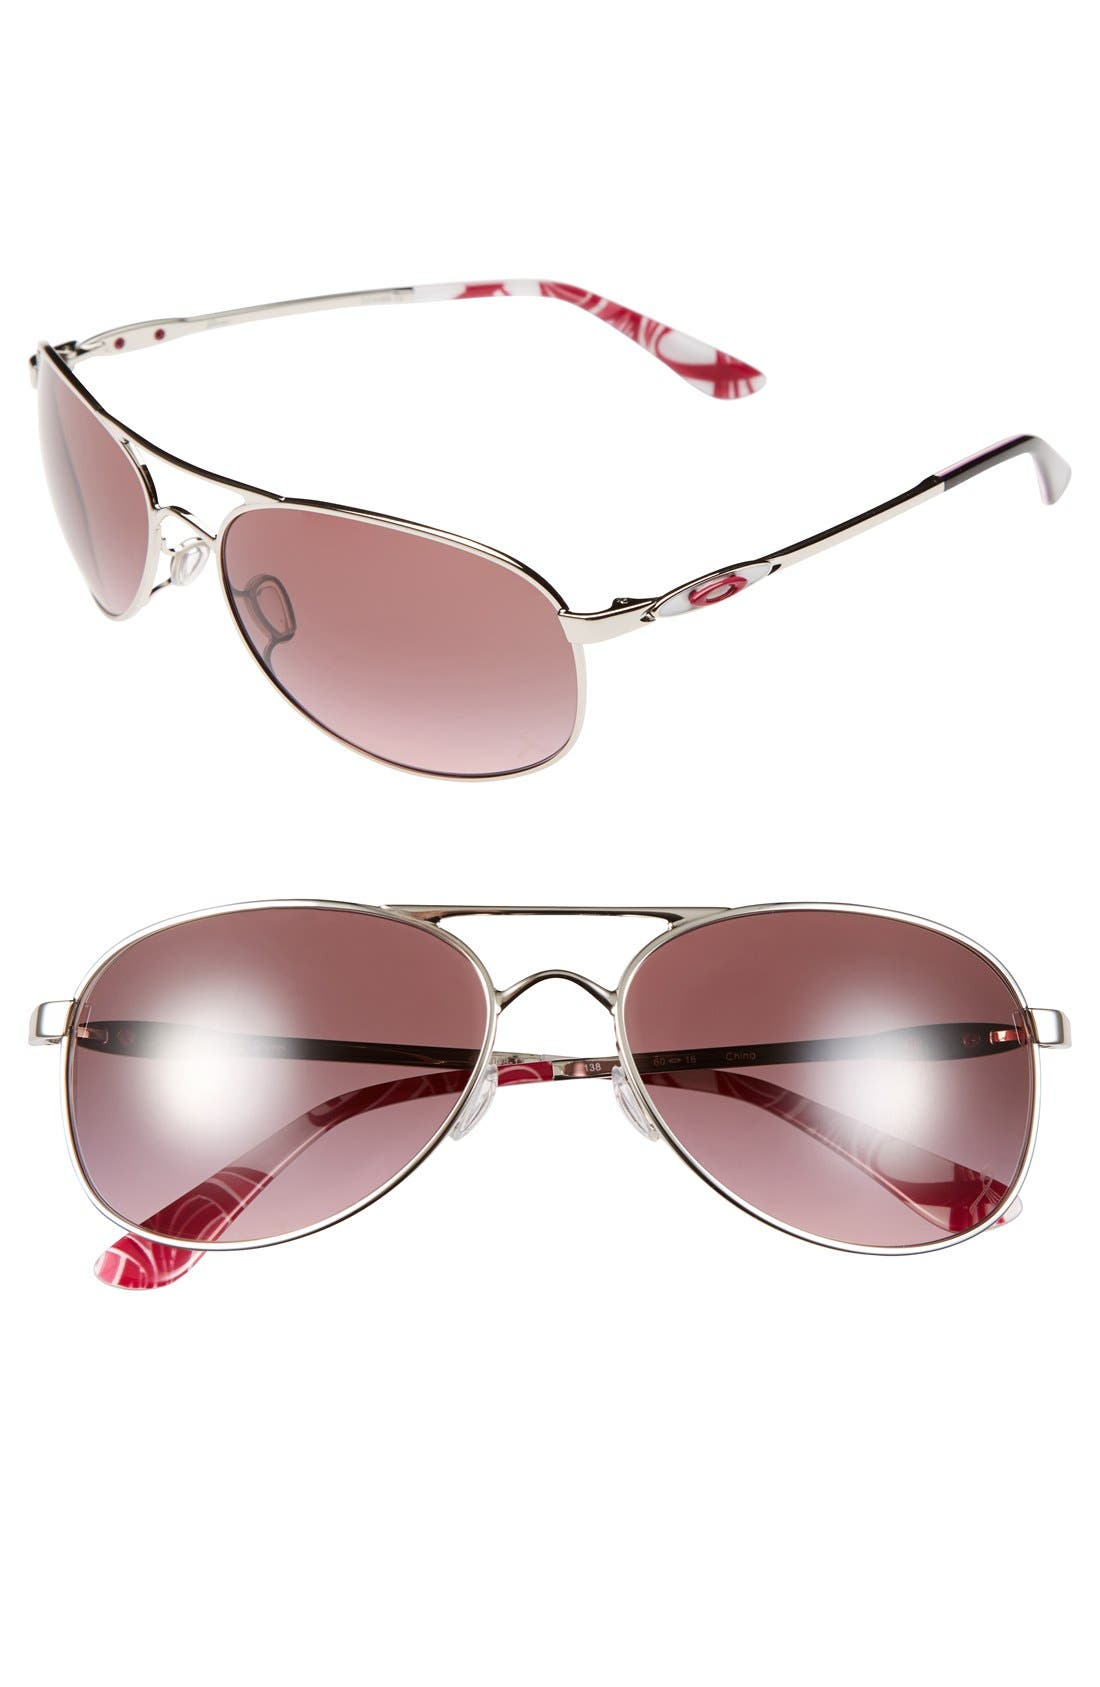 Alternate Image 1 Selected - Oakley 'Given' 60mm Sunglasses